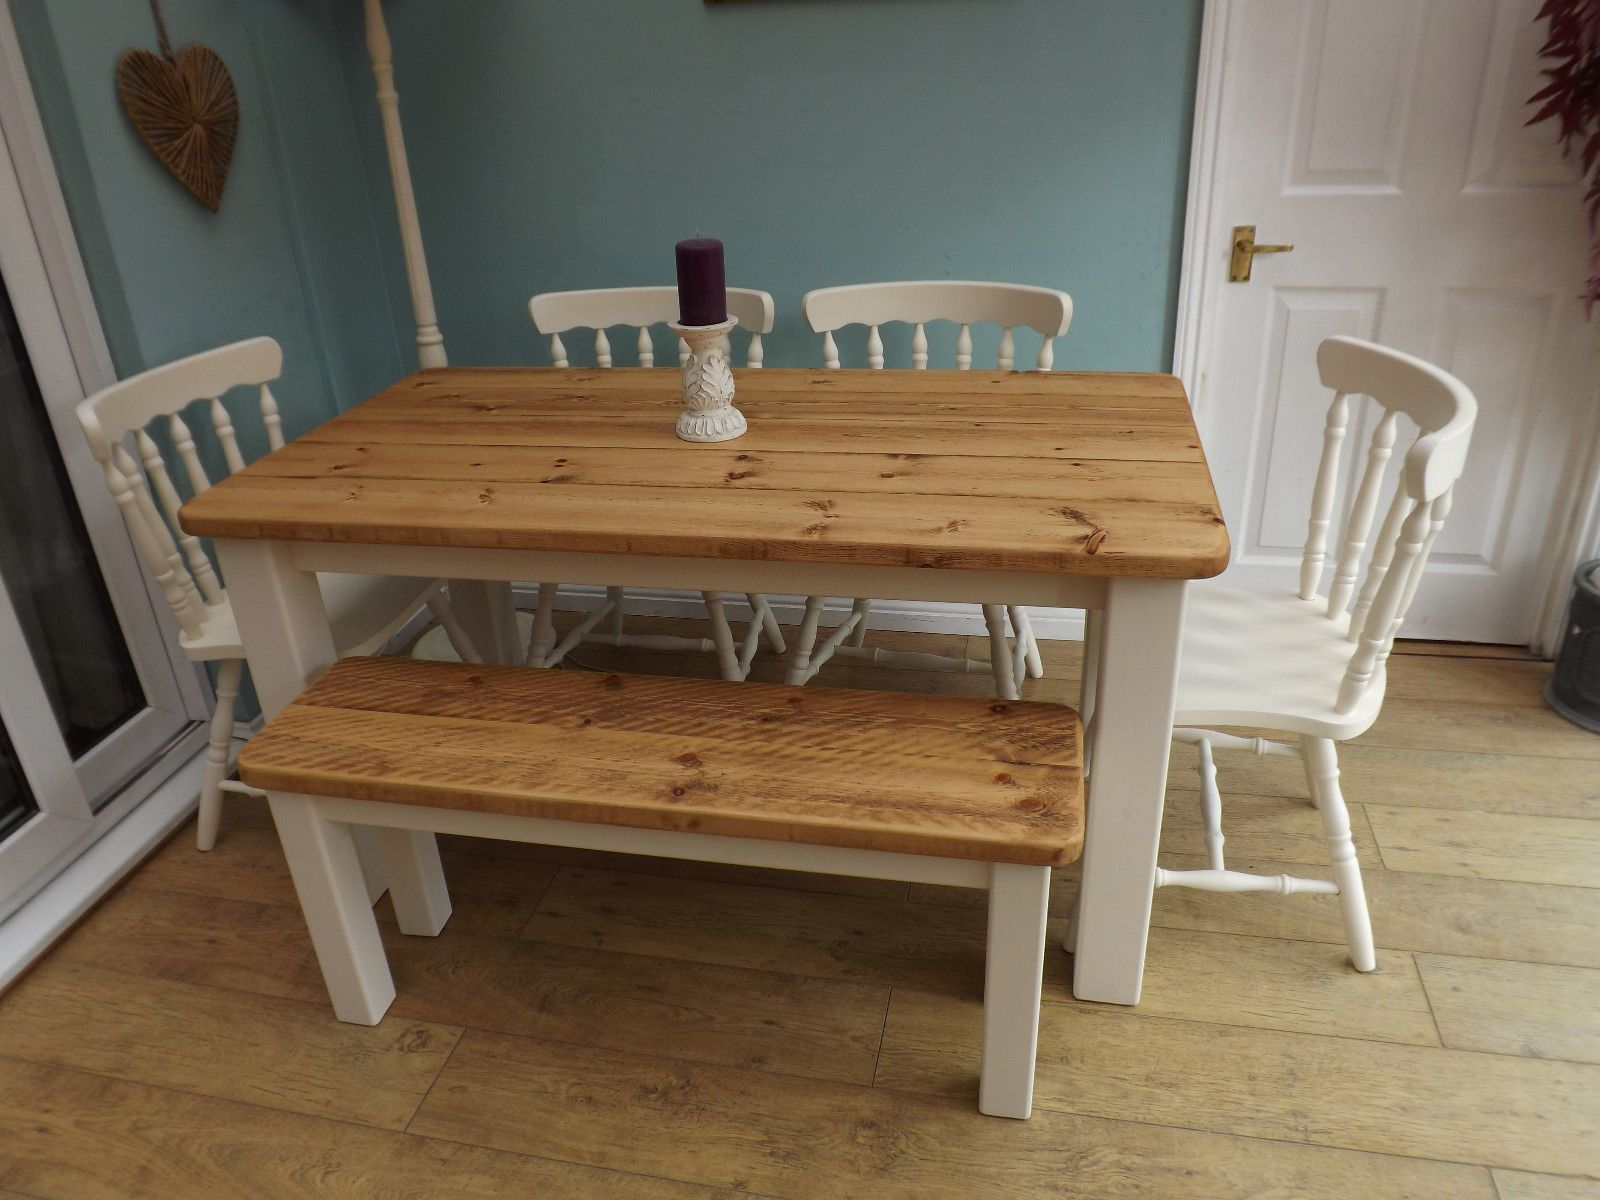 Pine Farmhouse Kitchen Table Rustic Pine Farmhouse Kitchen Dining Table And Chairs And Bench